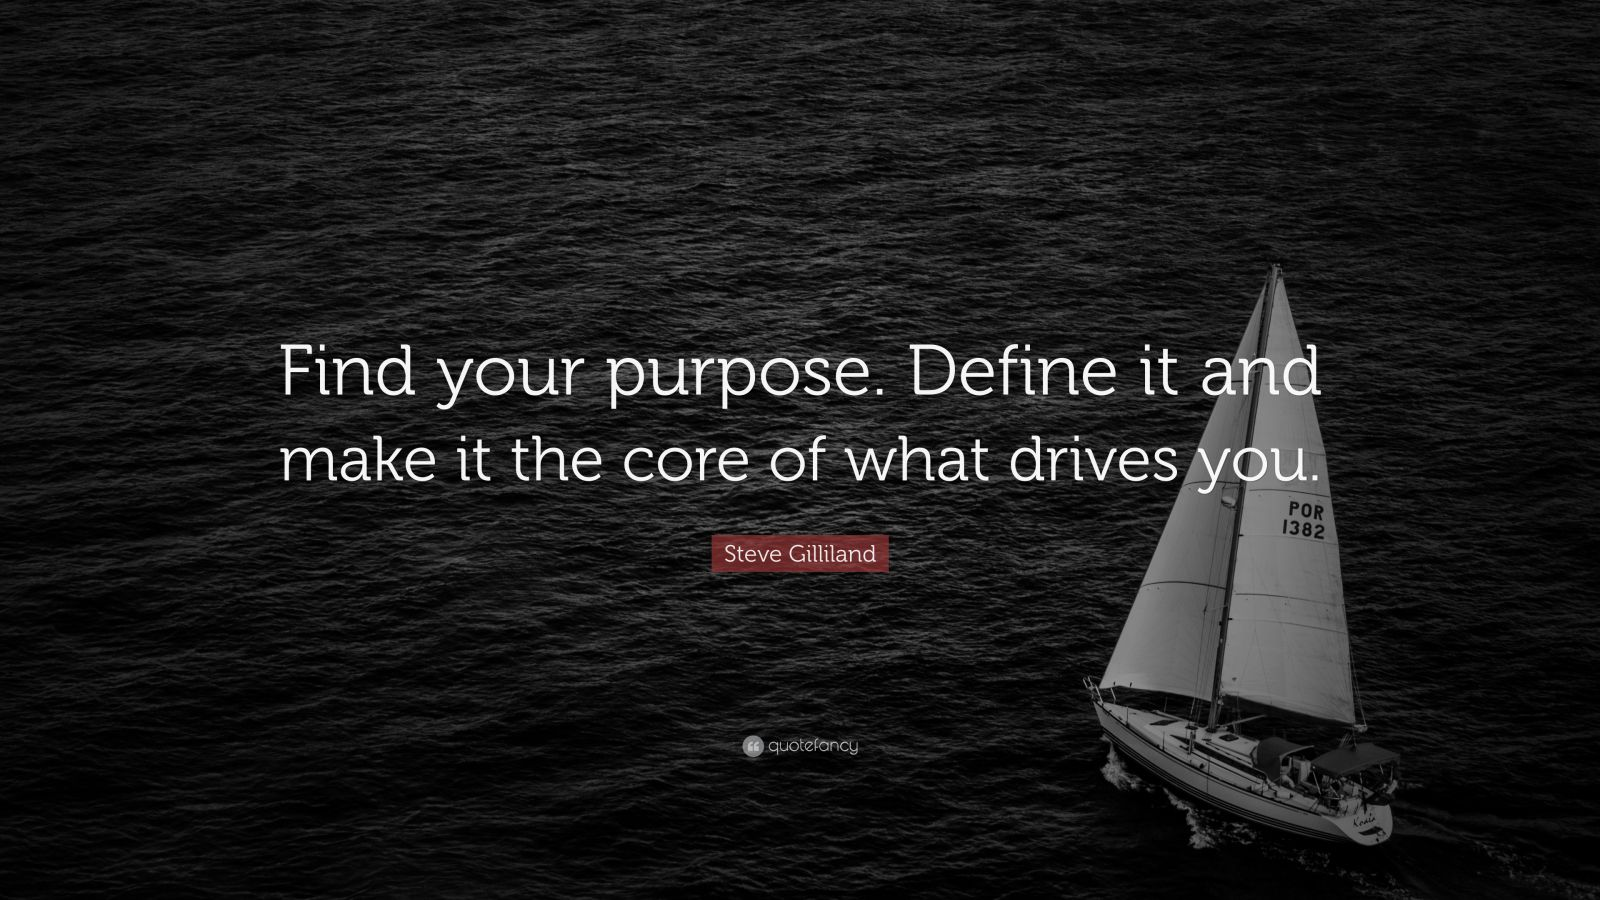 """Steve Gilliland Quote: """"Find your purpose. Define it and make it the core of what drives you."""""""